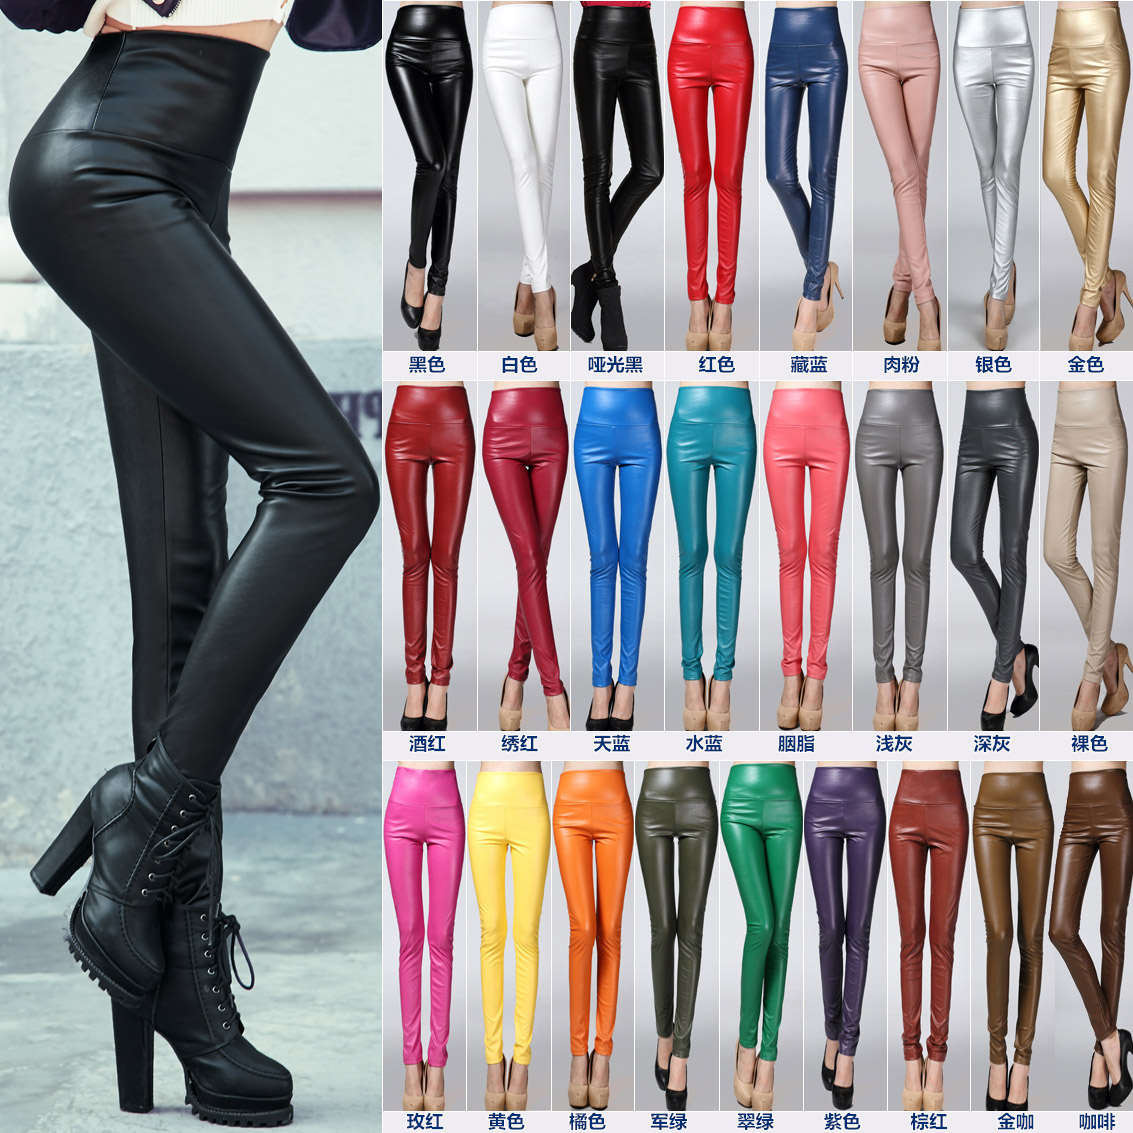 2017 Autumn Winter Women Elastic PU Leather Velvet High Waist Thick Warm Leggings Slim Pencil Pants Colorful Trousers Female